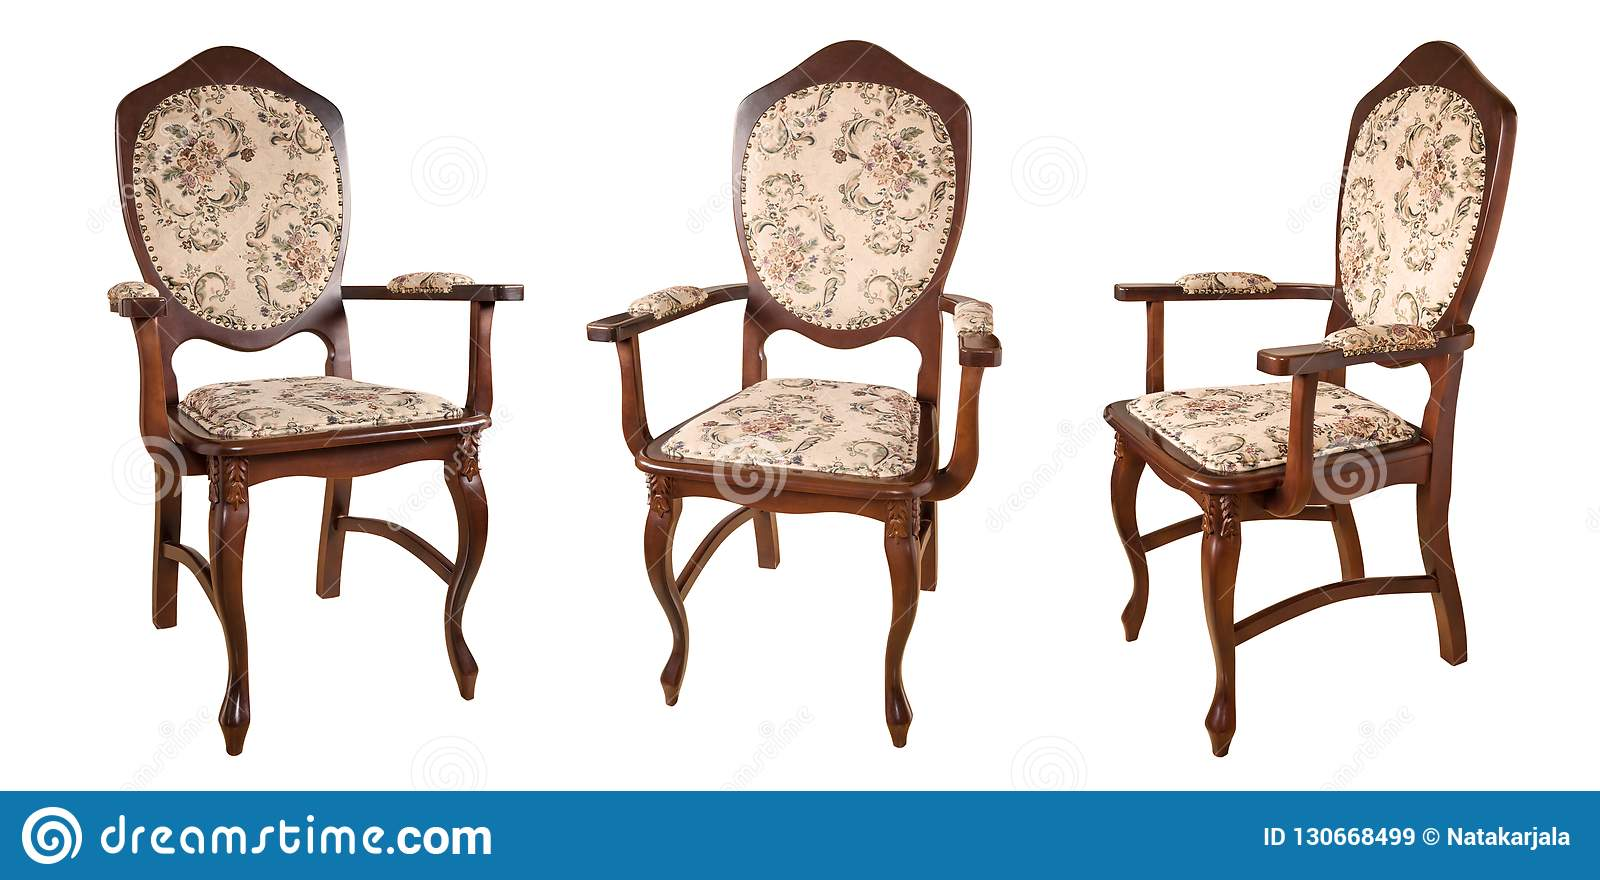 Groovy Vintage Wooden Chairs Isolated On White Background Retro Machost Co Dining Chair Design Ideas Machostcouk